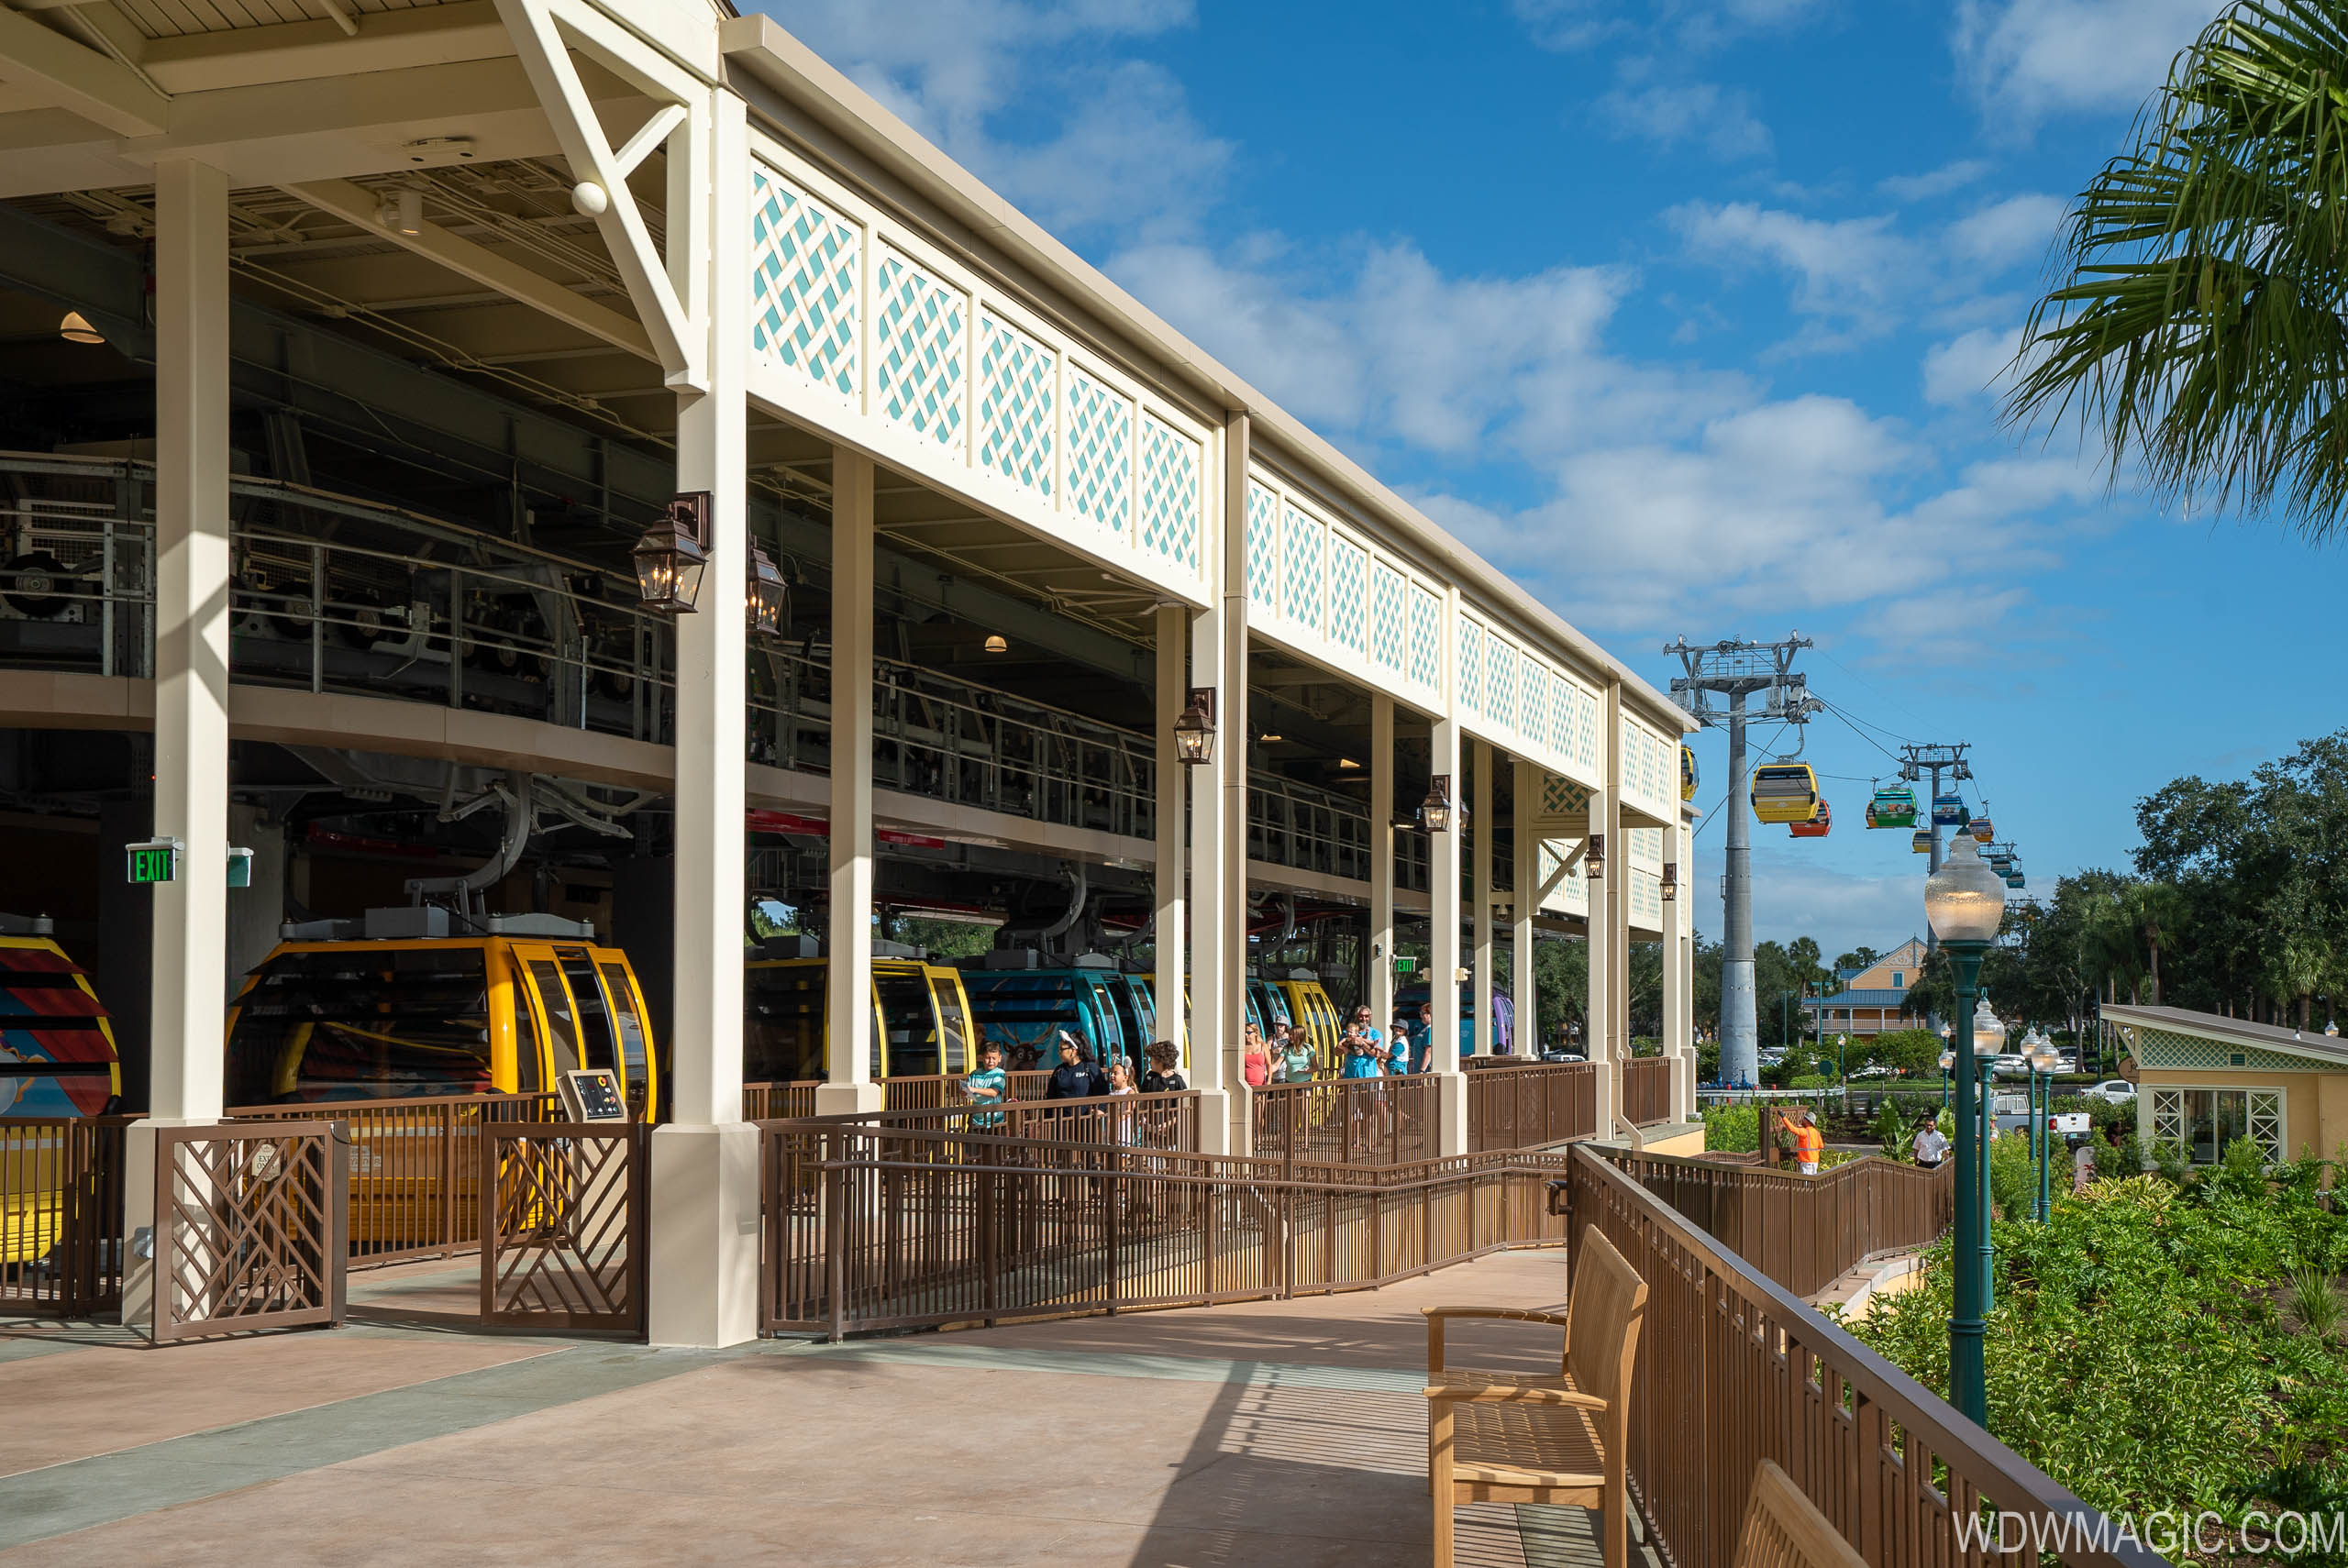 Skyliner station at Caribbean Beach Resort - Epcot line